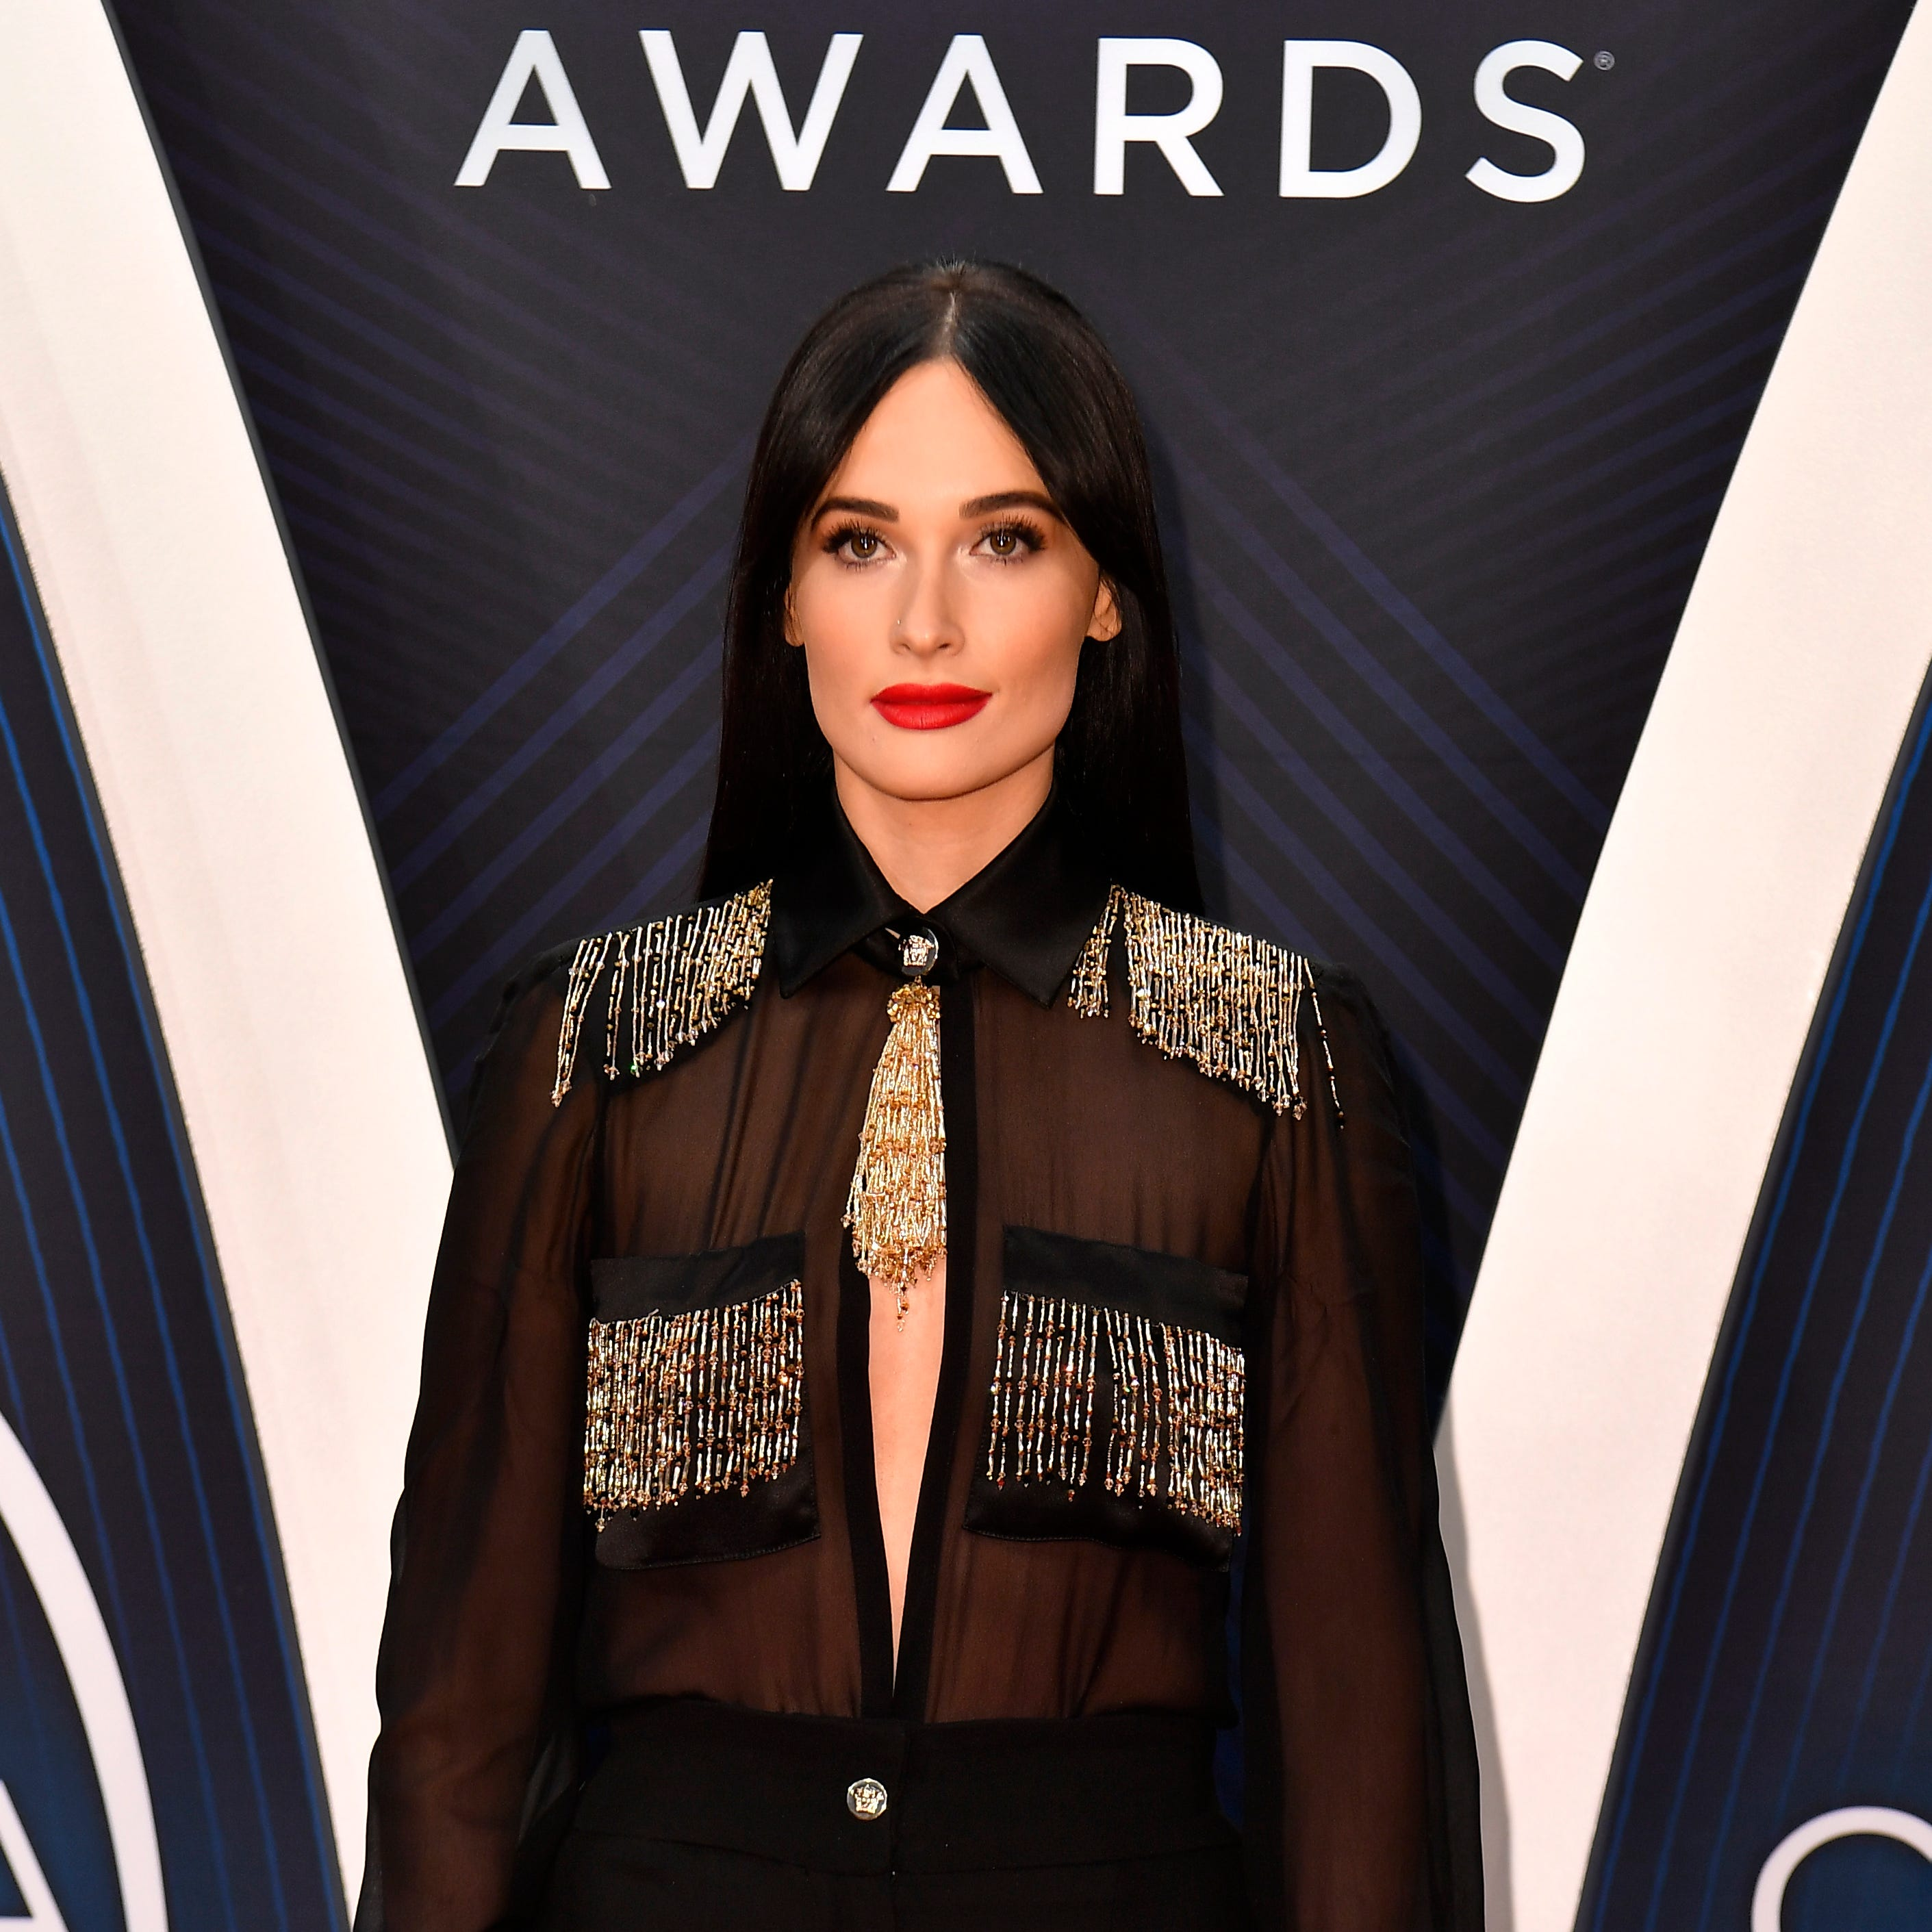 See Kacey Musgraves' detention slips, outfits and more at Country Music Hall of Fame exhibit